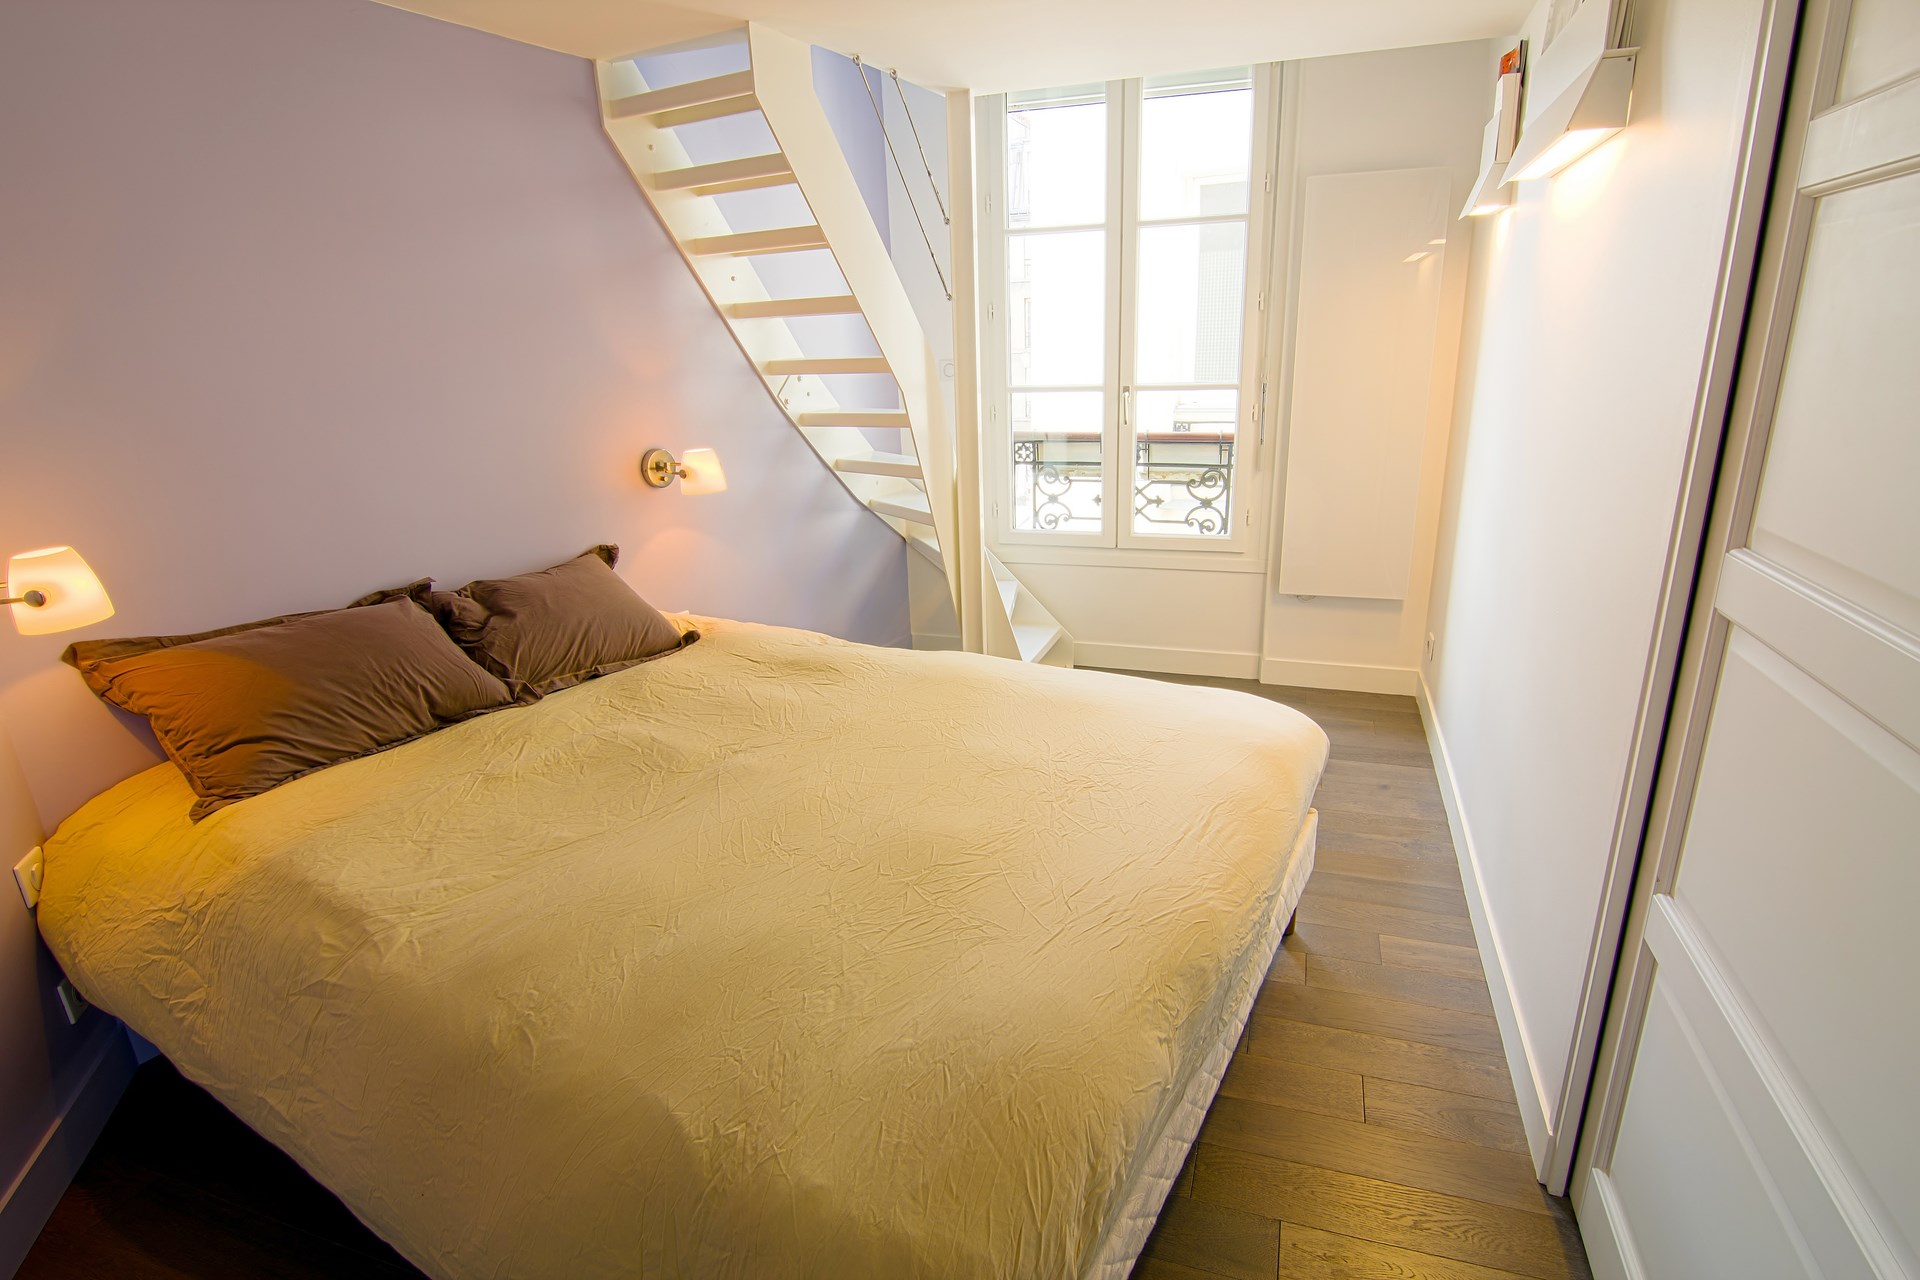 Am nagement appartement sous combles baign de lumi re paris - Temperature minimum dans un logement ...